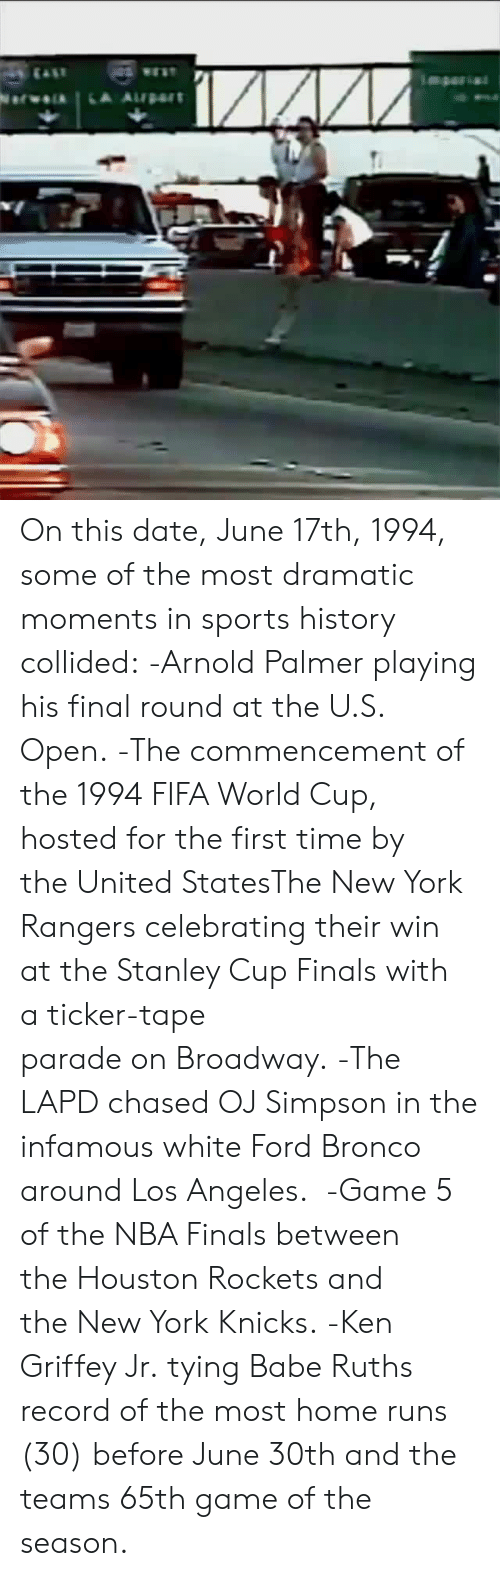 New York Knicks: On this date, June 17th, 1994, some of the most dramatic moments in sports history collided:  -Arnold Palmer playing his final round at the U.S. Open.  -The commencement of the 1994 FIFA World Cup, hosted for the first time by the United StatesThe New York Rangers celebrating their win at the Stanley Cup Finals with a ticker-tape parade on Broadway.  -The LAPD chased OJ Simpson in the infamous white Ford Bronco around Los Angeles.   -Game 5 of the NBA Finals between the Houston Rockets and the New York Knicks.  -Ken Griffey Jr. tying Babe Ruths record of the most home runs (30) before June 30th and the teams 65th game of the season.